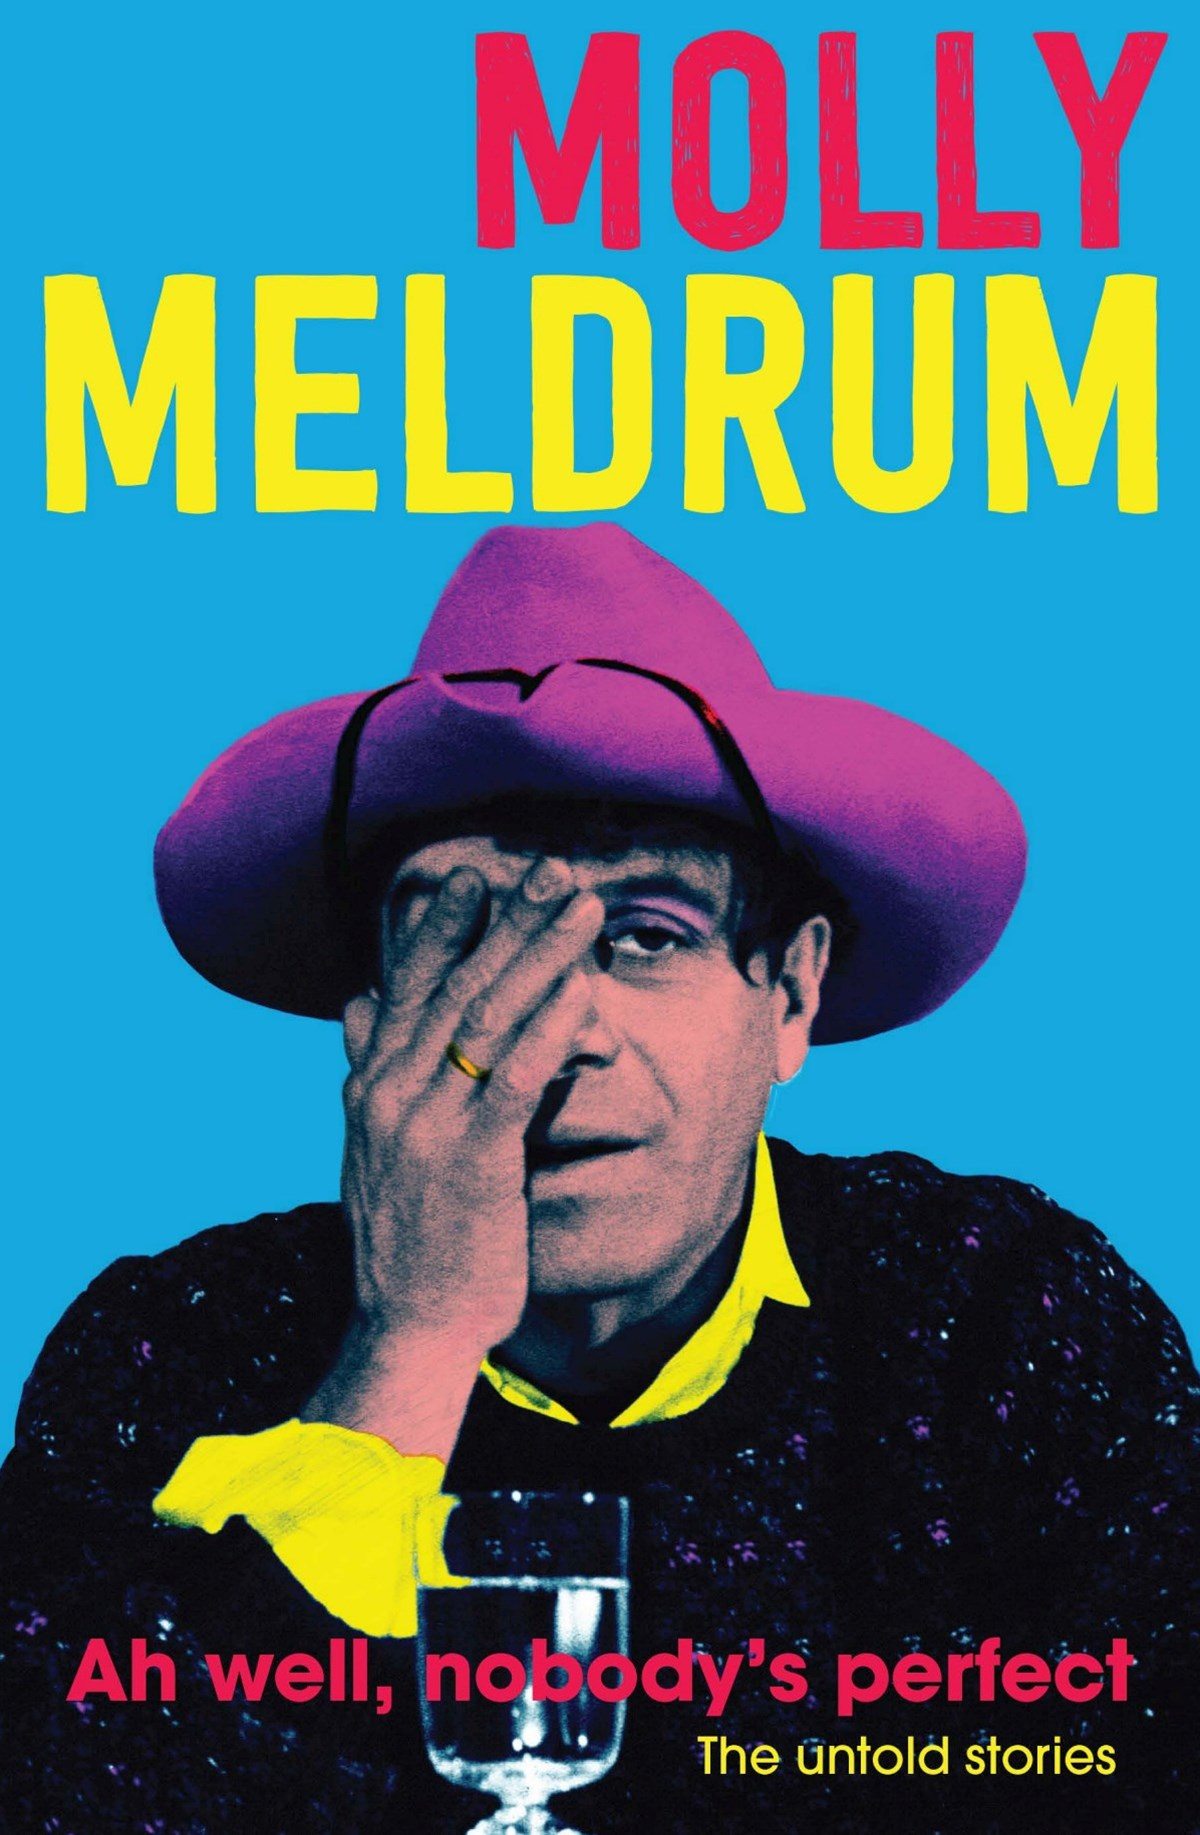 An evening of conversation with Molly Meldrum